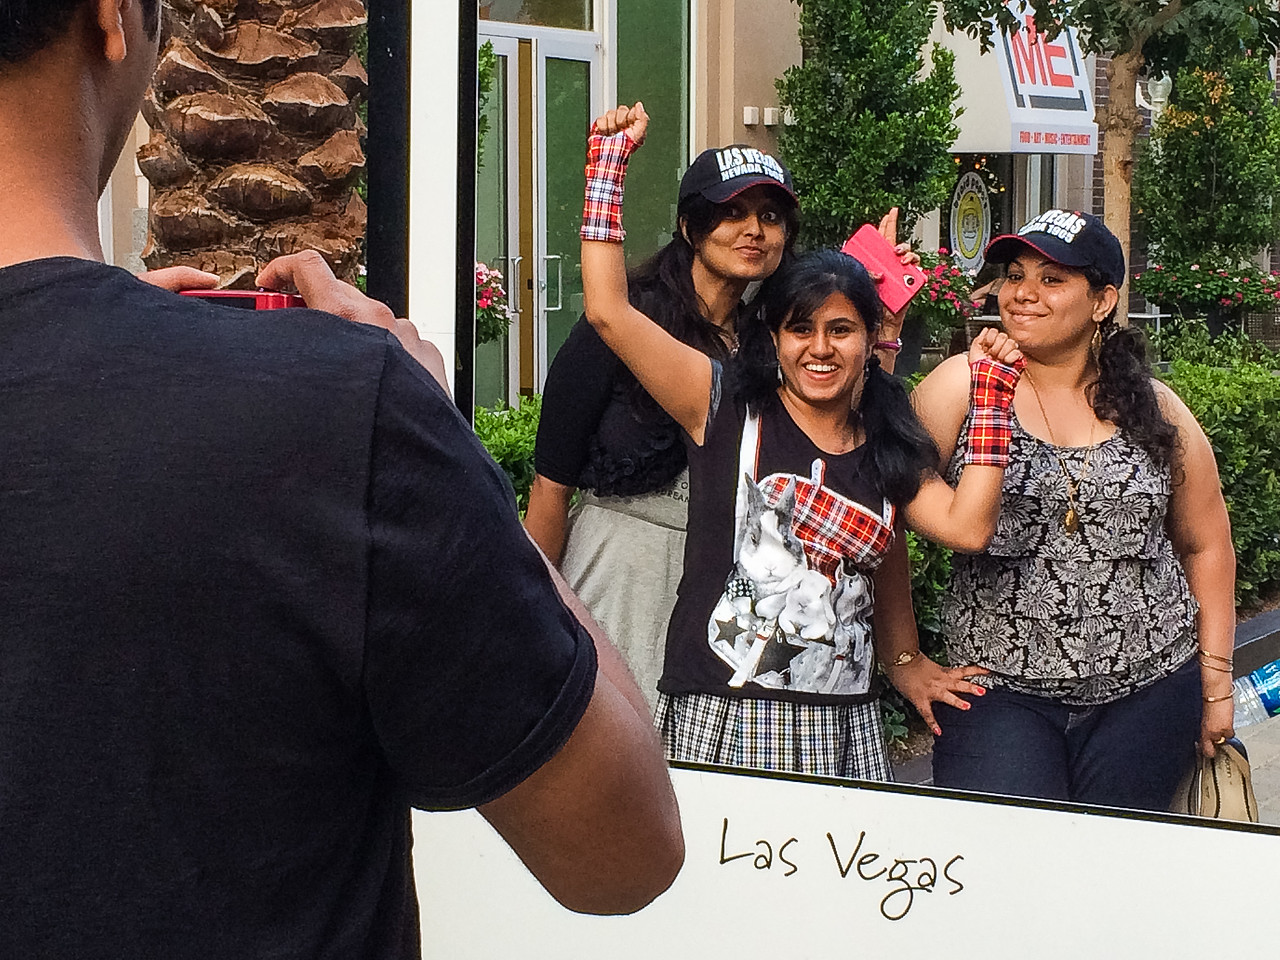 Selfies, Las Vegas, Nevada